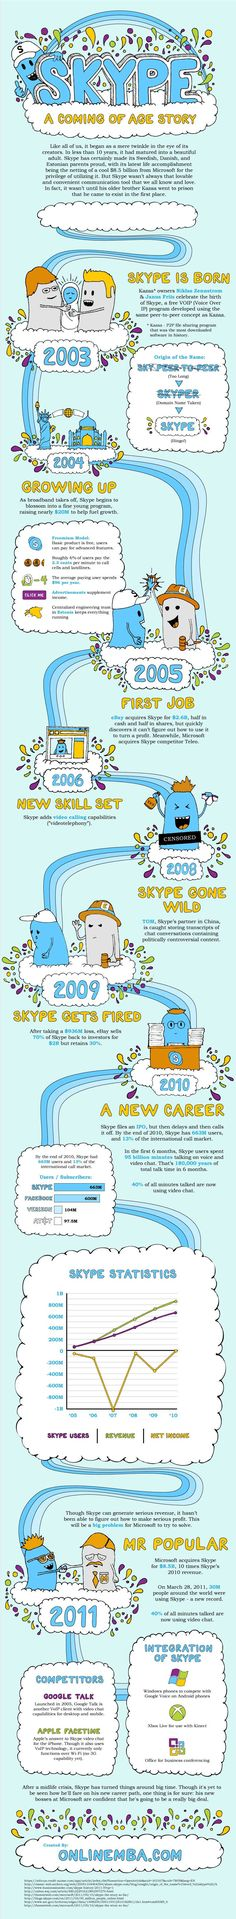 Infographic on the History of Skype